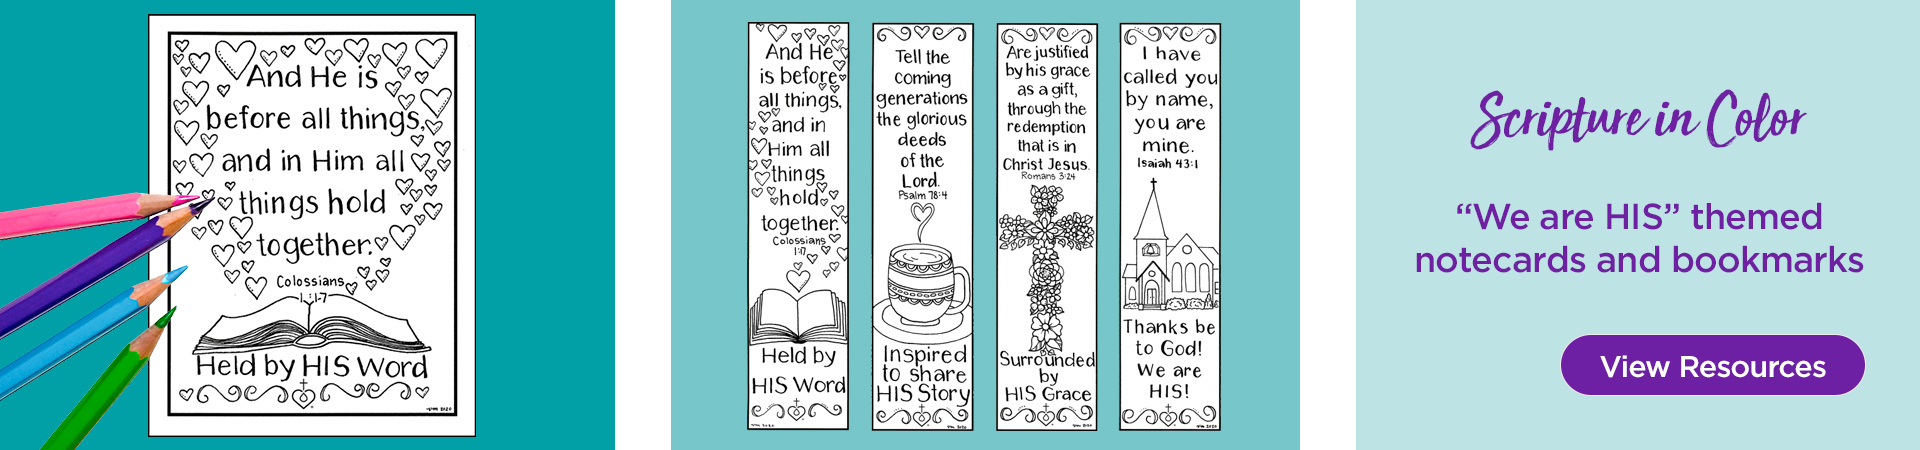 Scripture in Color: We are His themed notecards and bookmarks